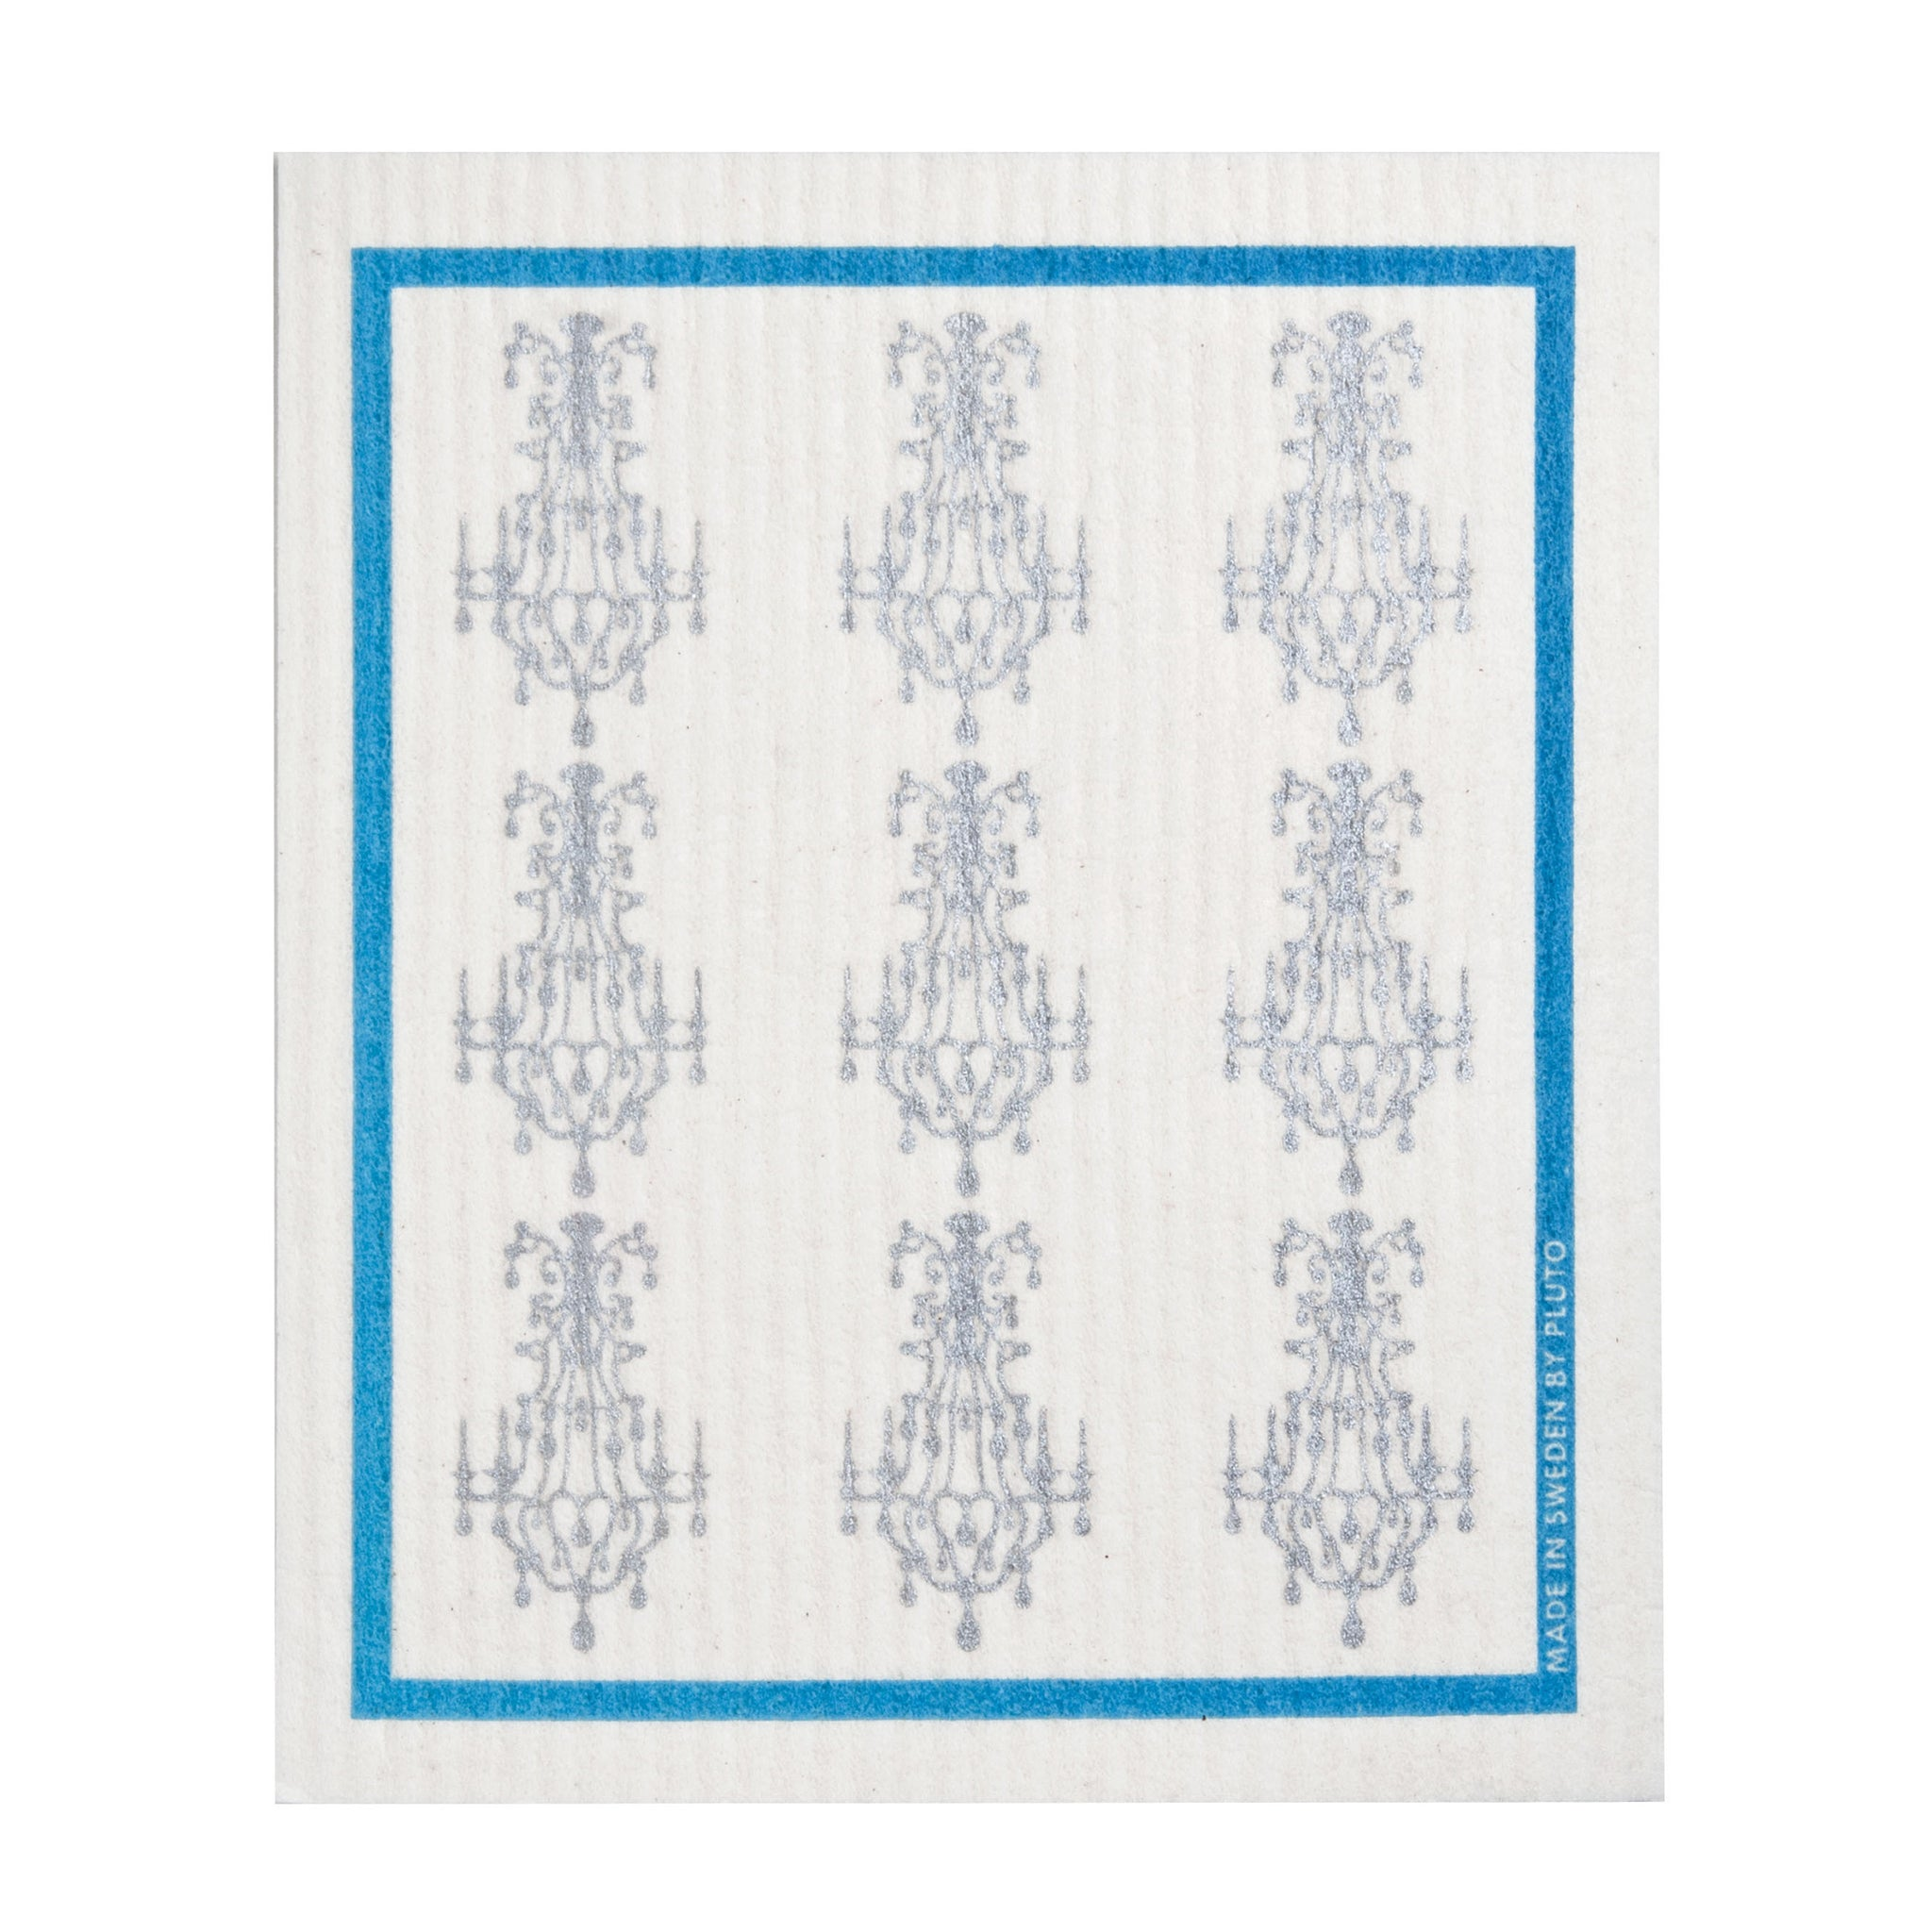 Chandelier Dishcloth - Northlight Homestore